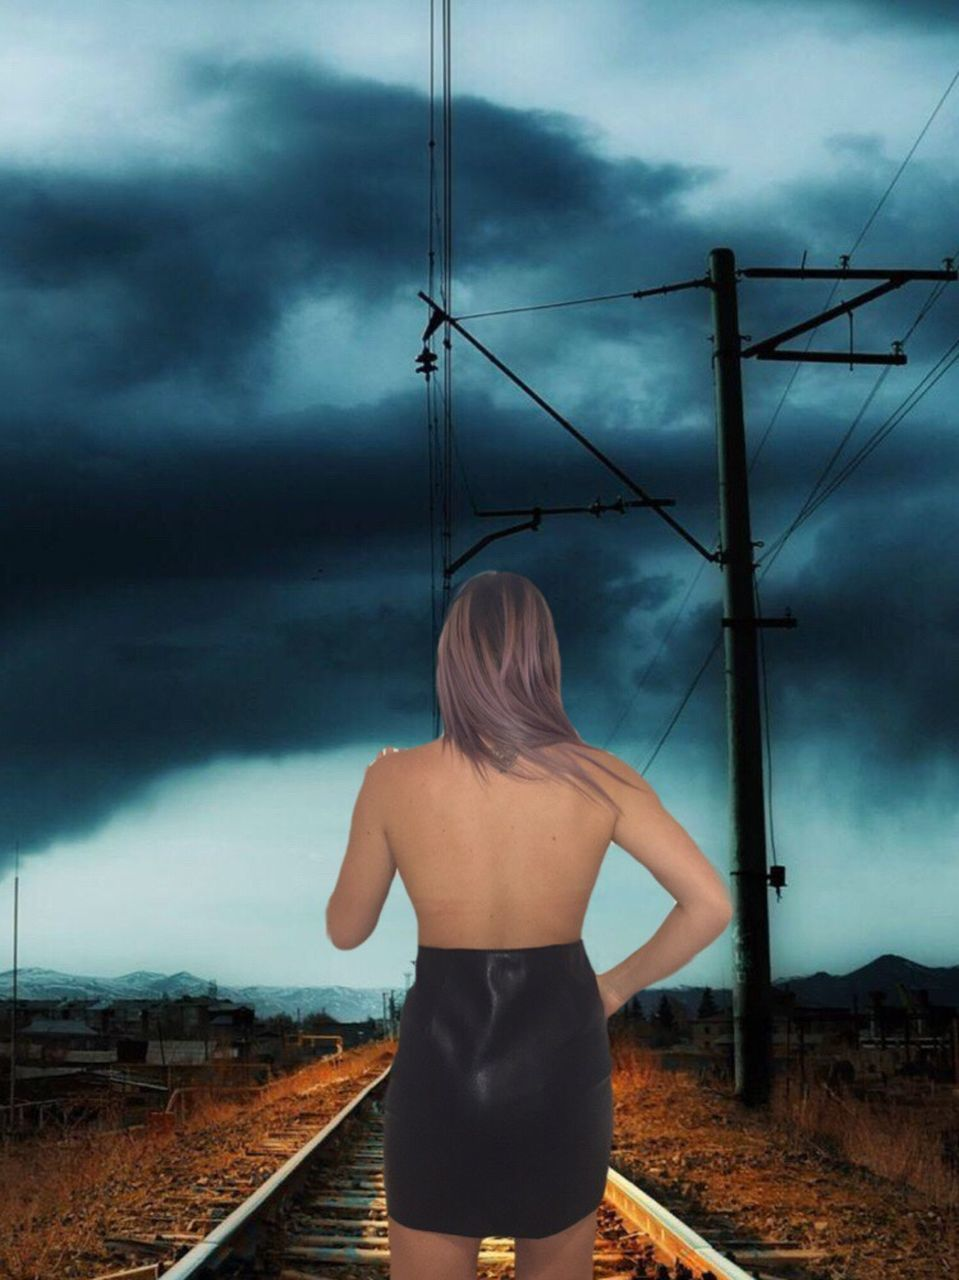 rear view, real people, cloud - sky, one person, sky, standing, outdoors, transportation, lifestyles, young adult, day, women, young women, technology, nature, people